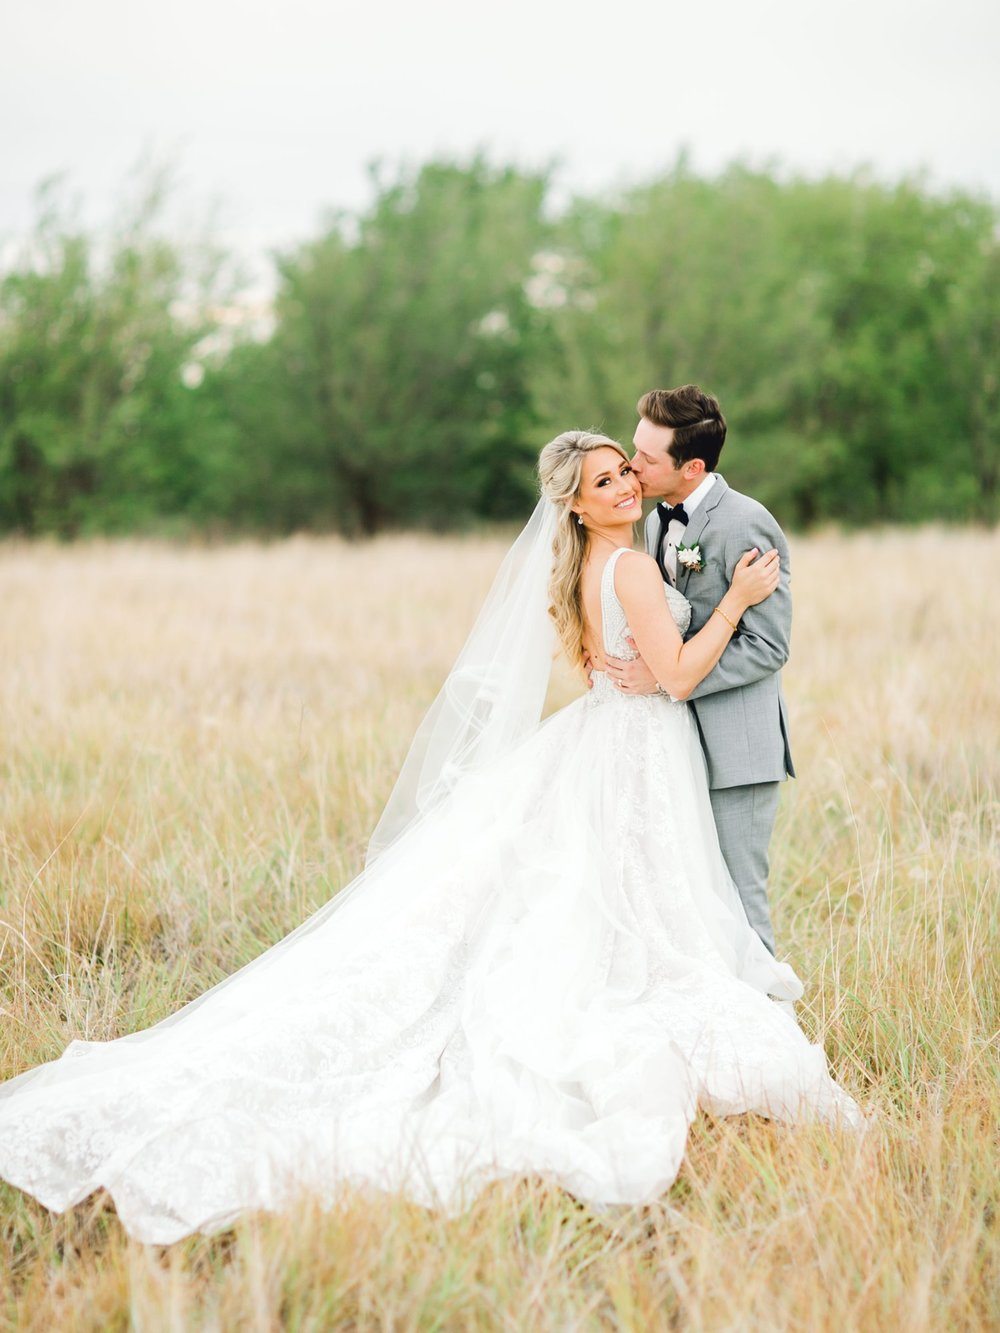 KAITLYN_AND_ZACHARY_HUNT_ALLEEJ_LUBBOCK_WEDDING_PHOTOGRAPHER_EBERLEY_BROOKS_EVENTS_0149.jpg